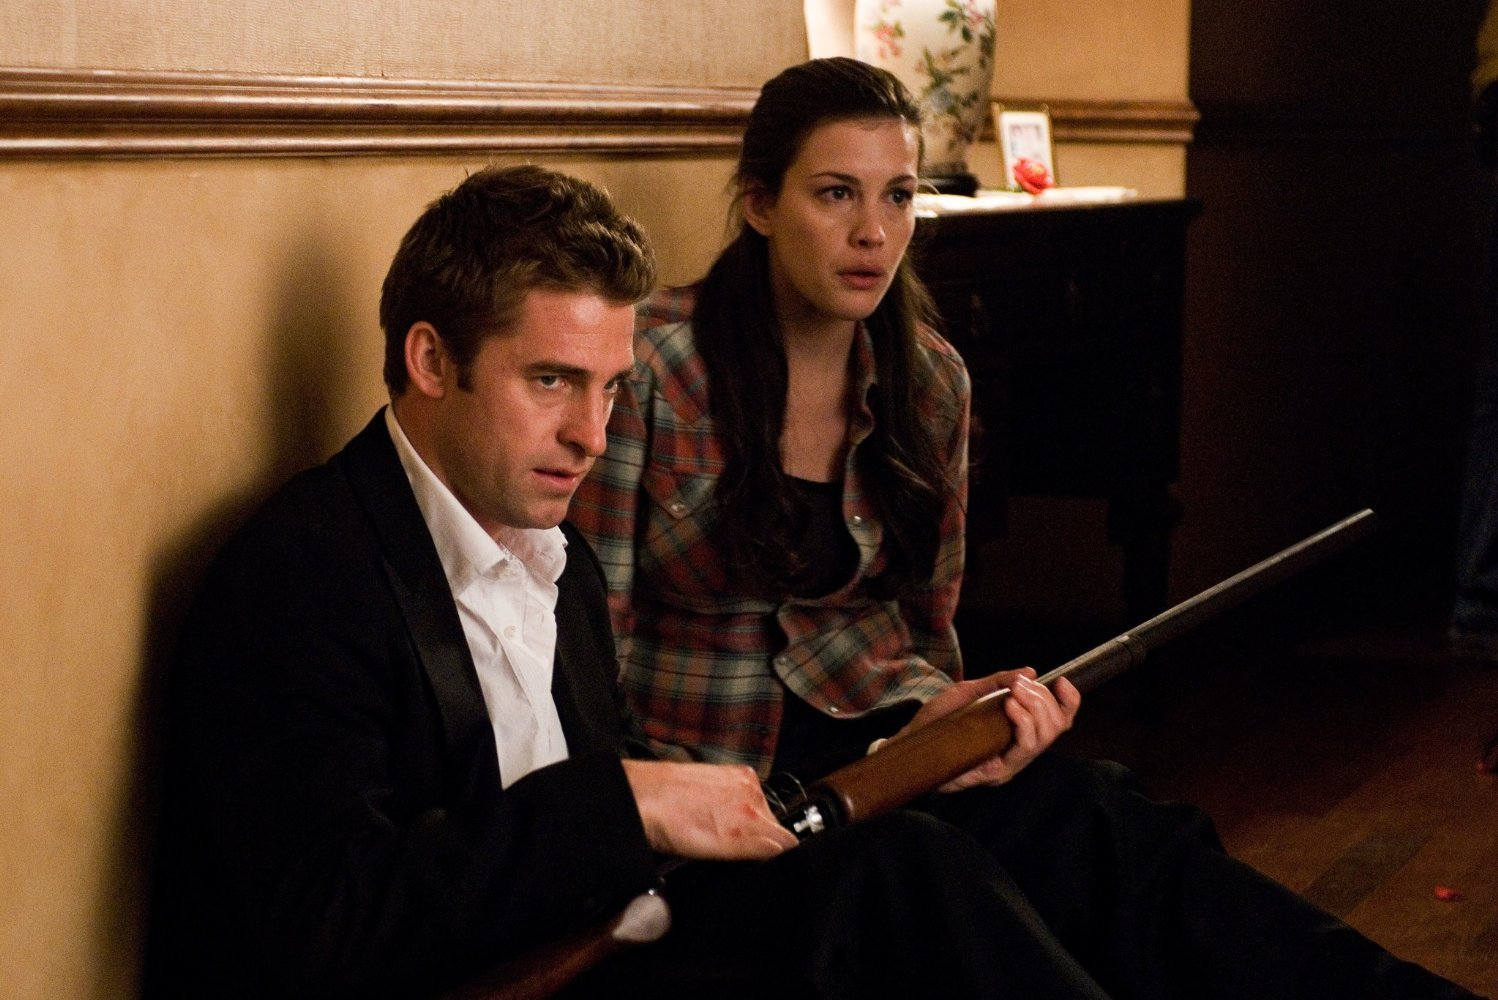 Scott Speedman, Liv Tyler at siege in their own home in The Strangers (2008)